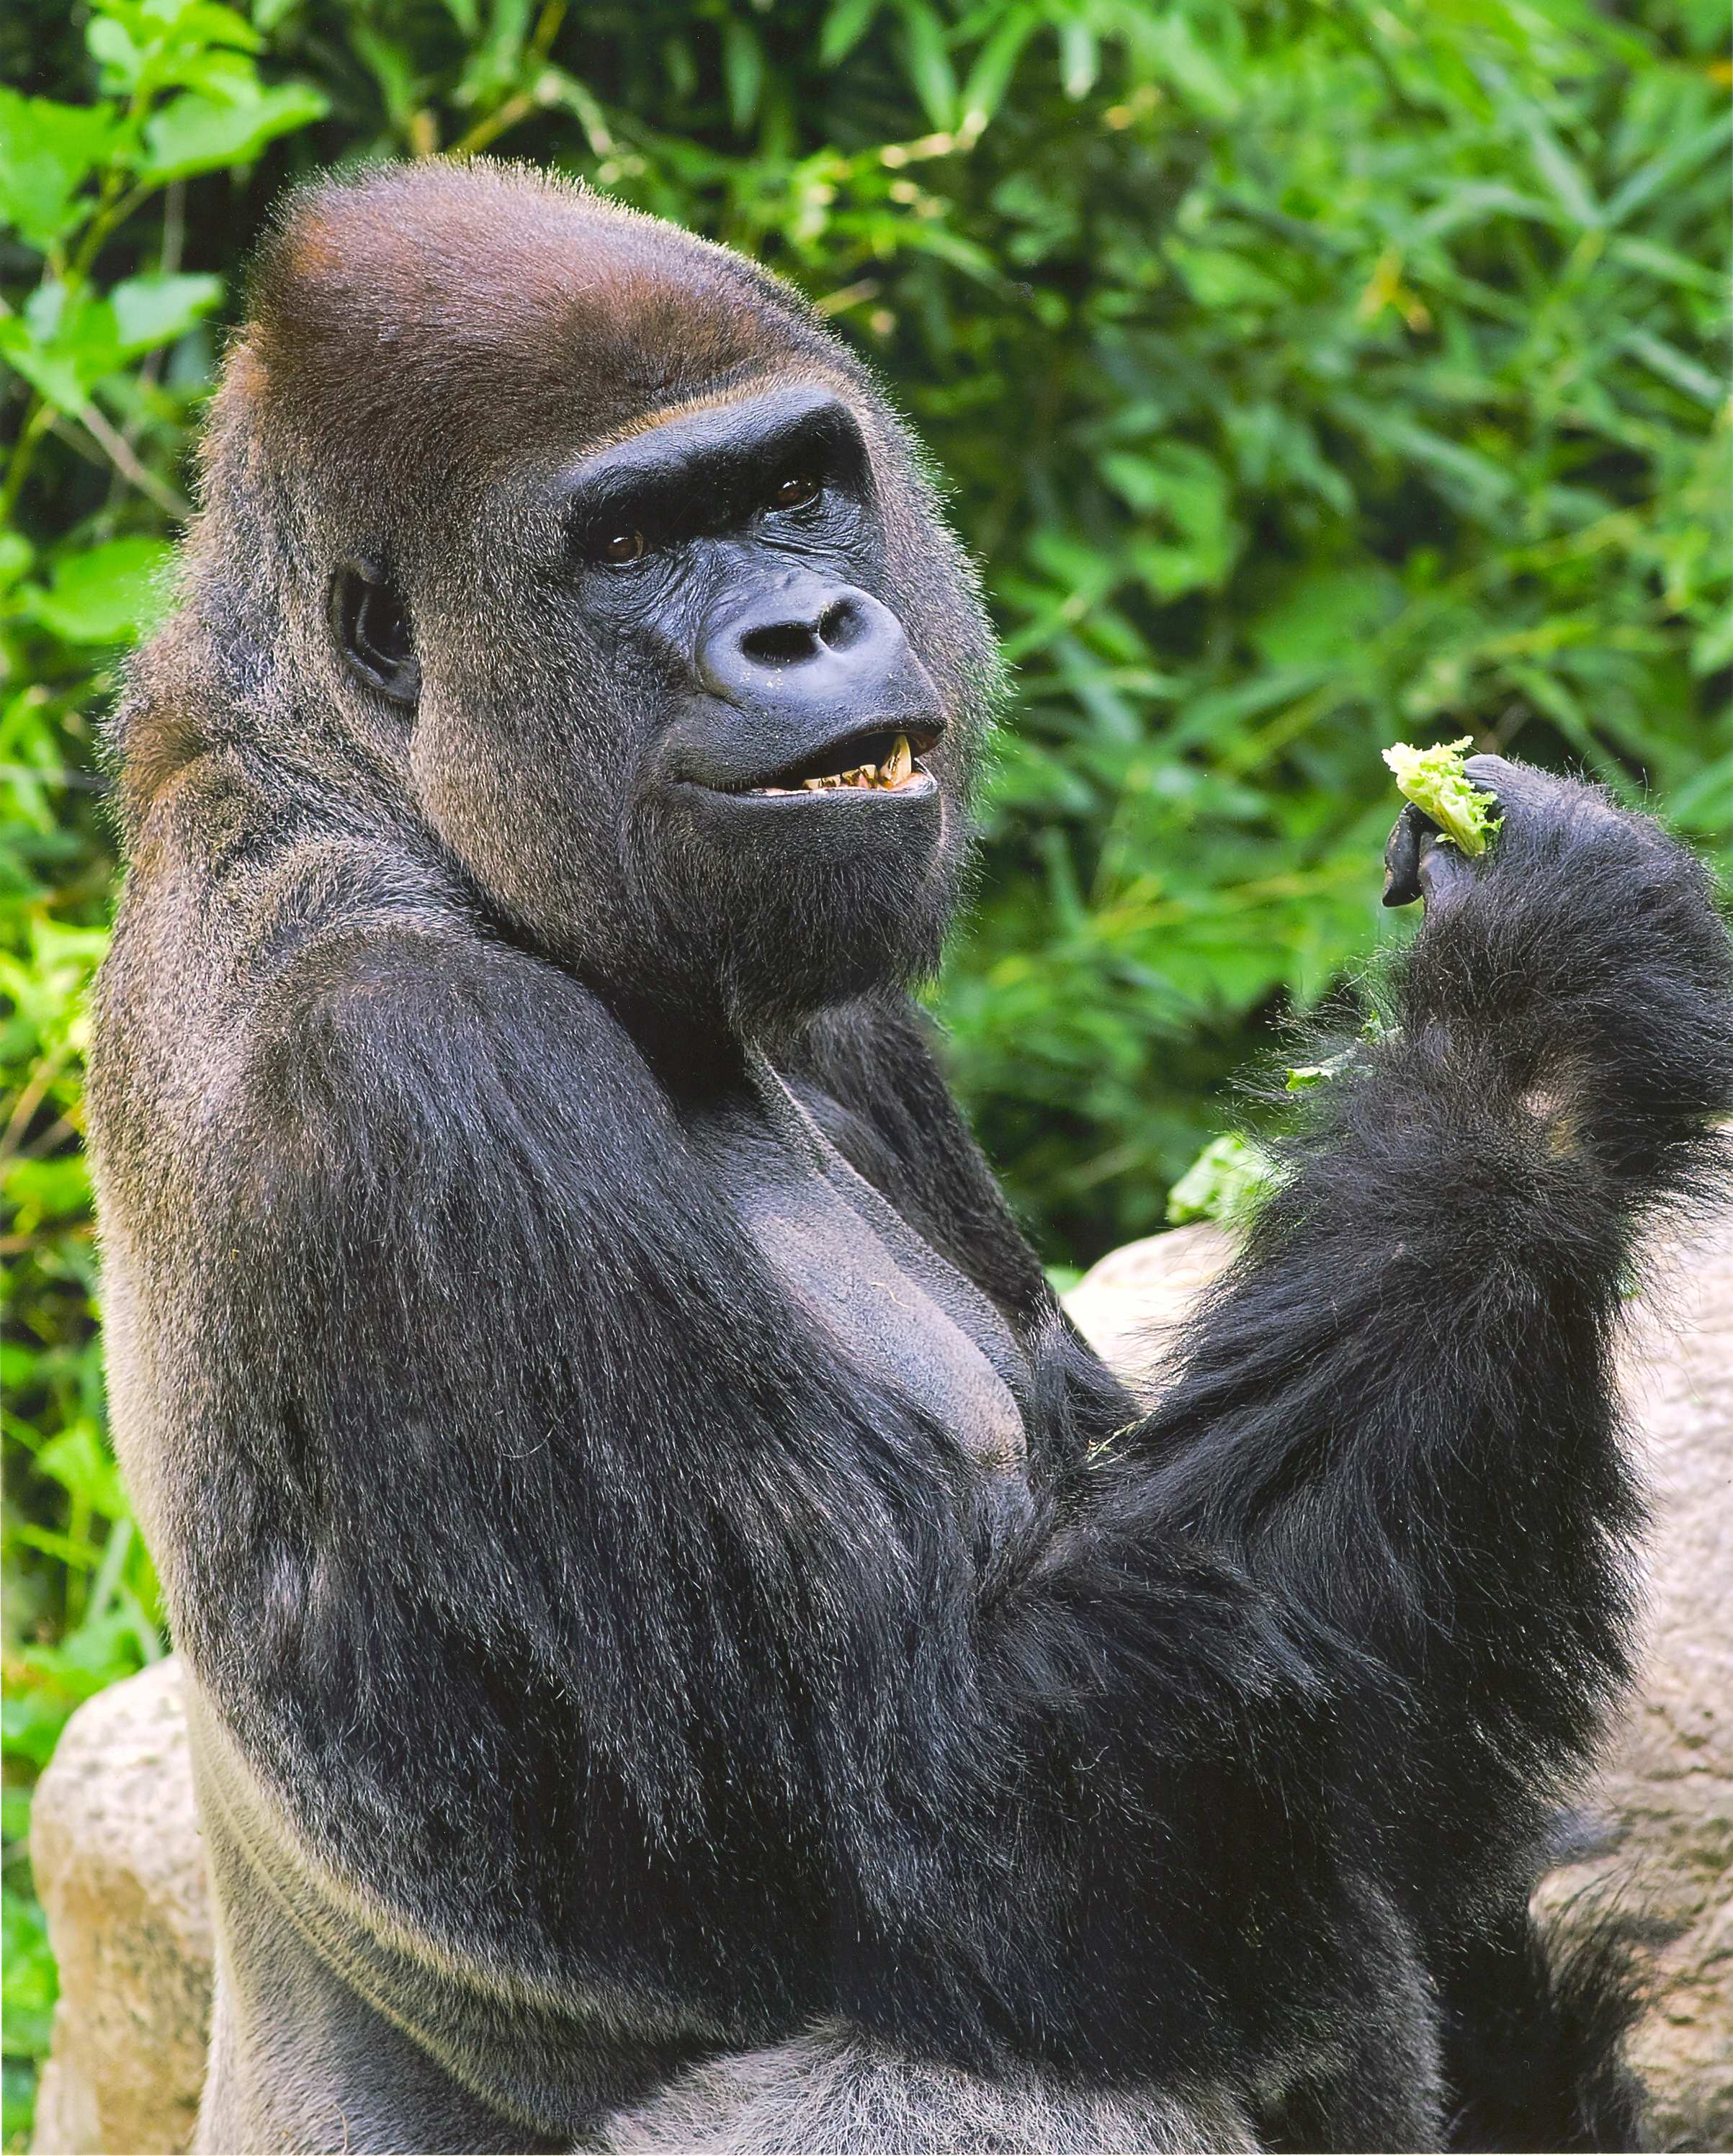 Mountain gorilla diet – what do gorillas eat